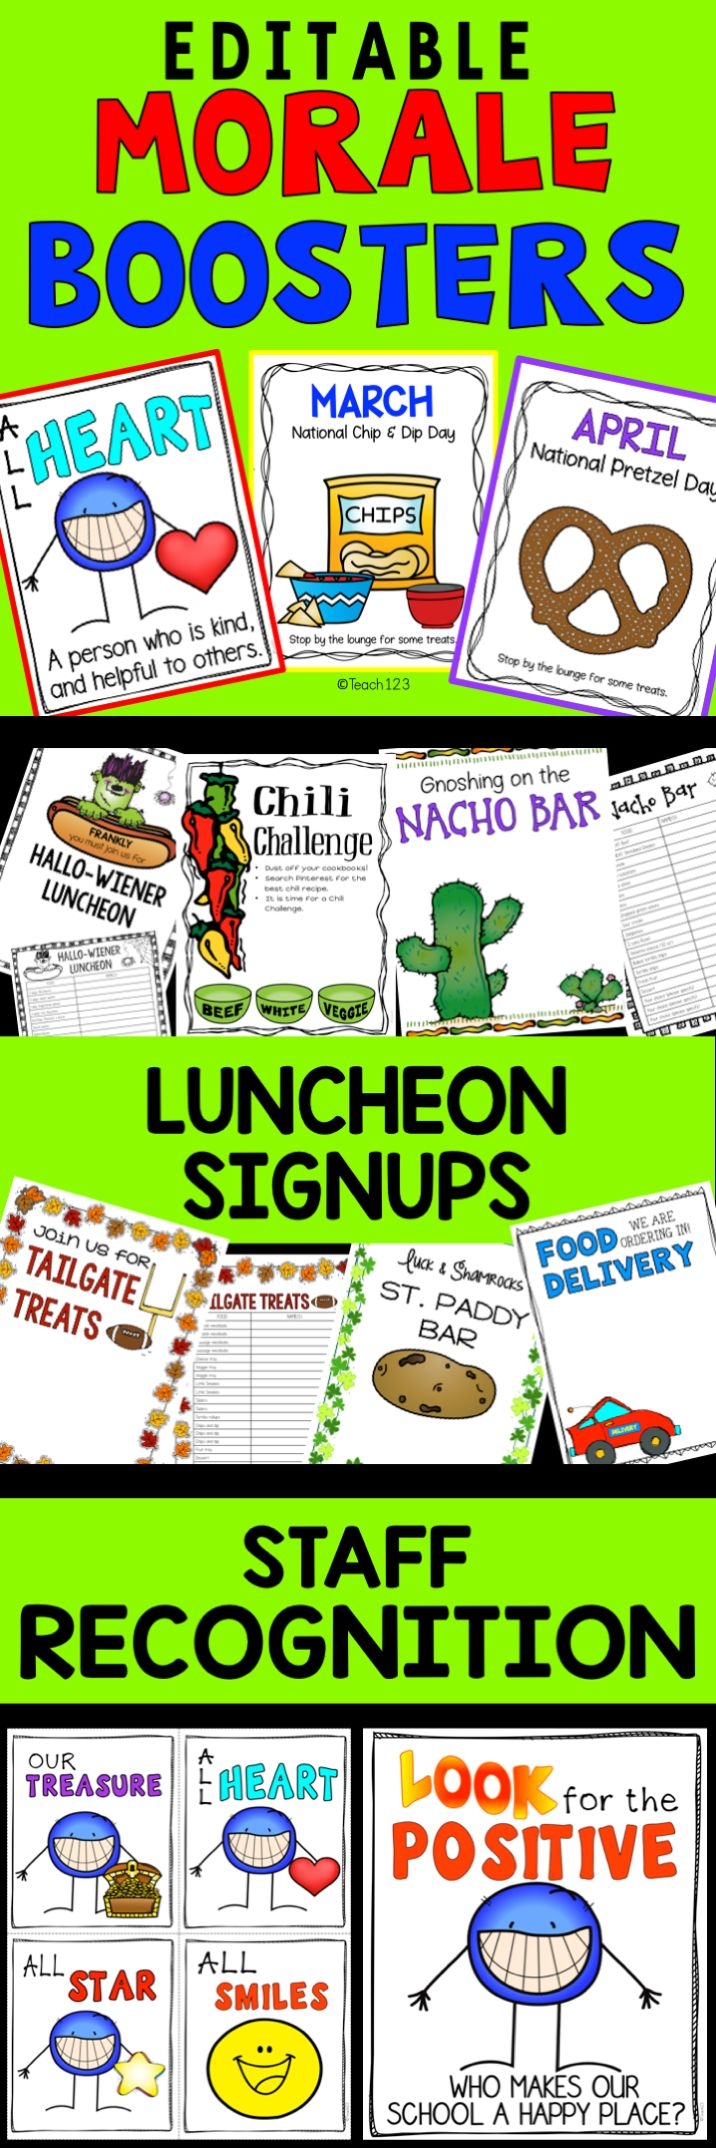 Great staff morale boosters - luncheon (EDITABLE signs, signups, organization tips), Monthly themed snack (EDITABLE signs), staff recognition system, happy notes, and ideas / activities for making your school a happy place. paid